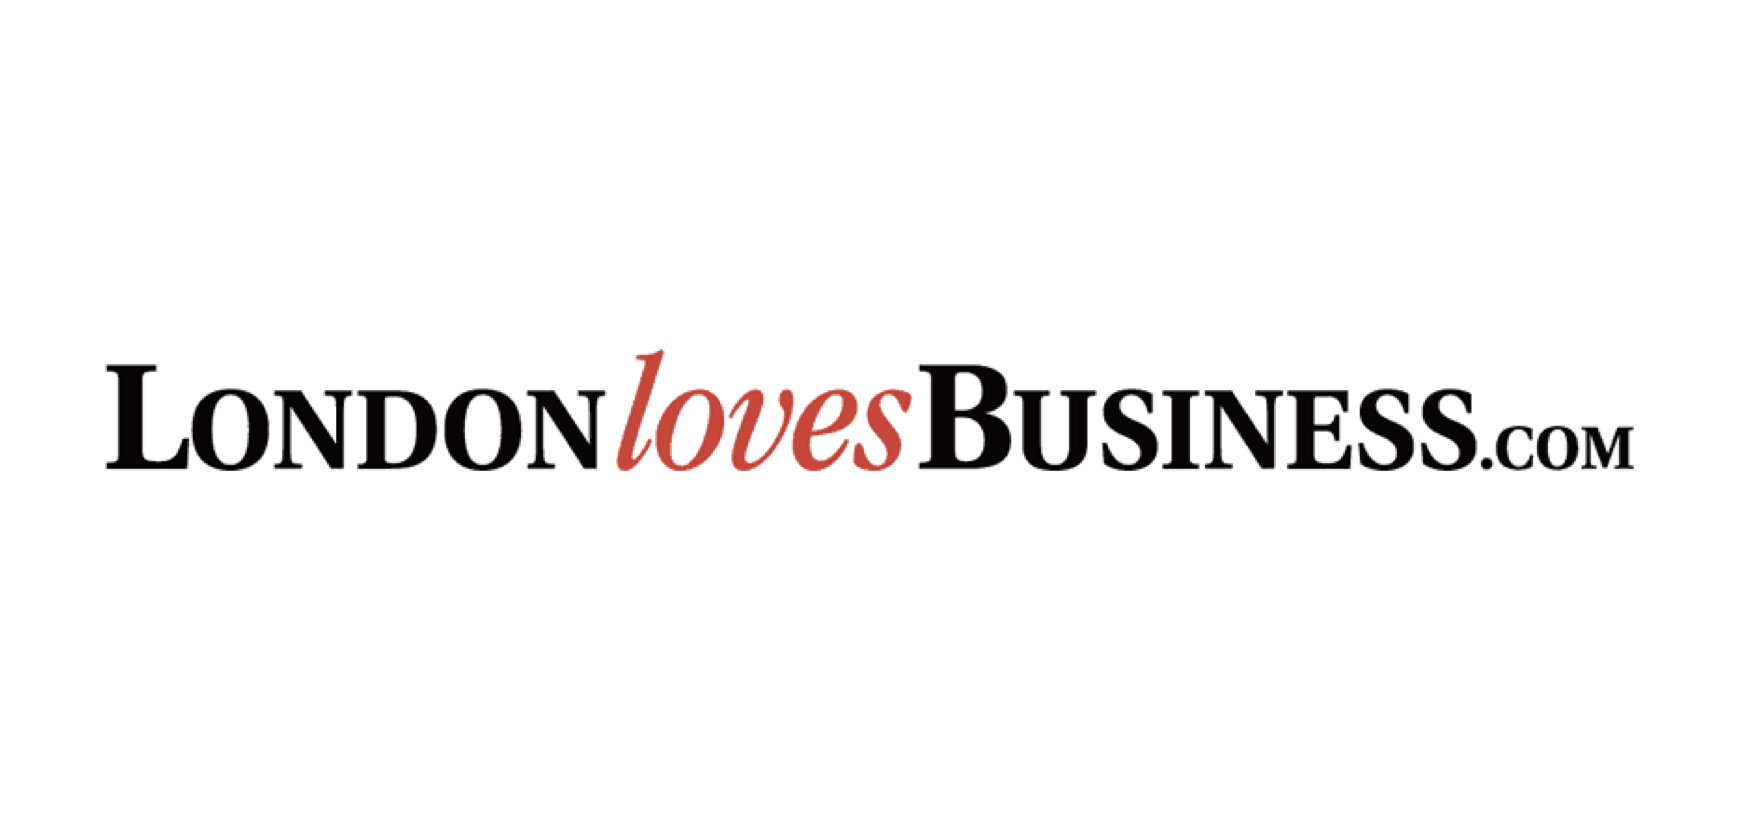 LondonLovesBusiness: Find out how Digital Shadows is protecting British firms from data breaches